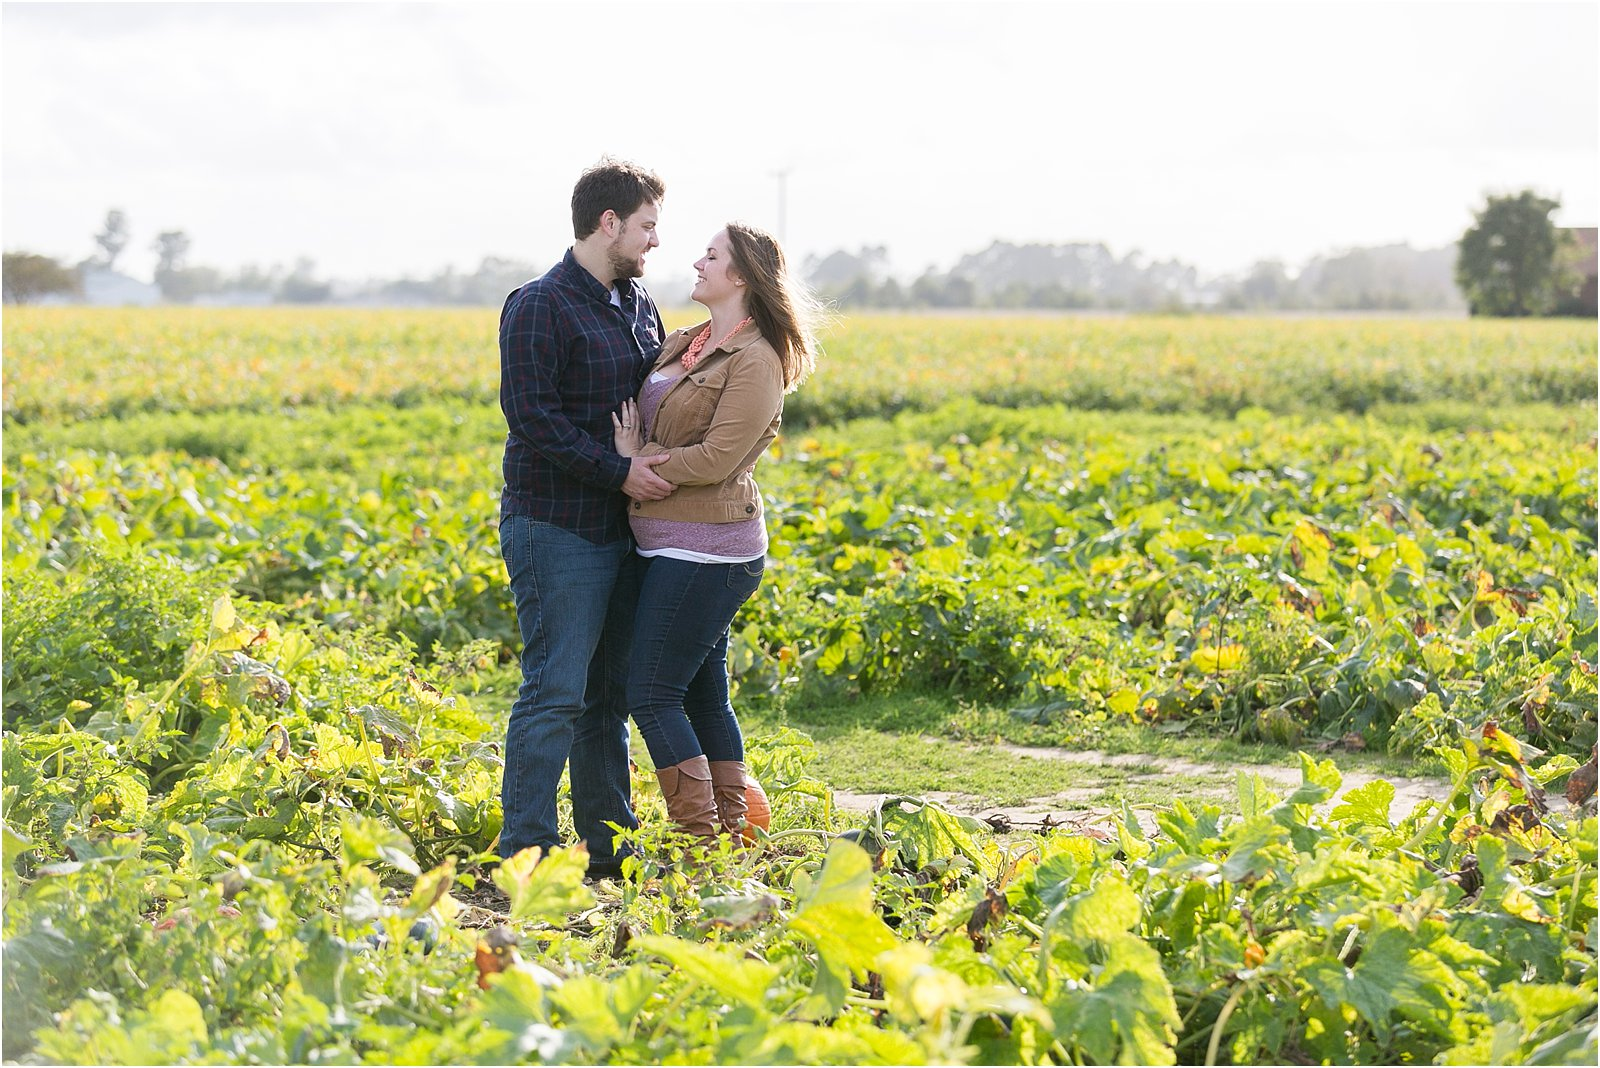 jessica_ryan_photography_pumpkin_patch_engagement_portraits_fall_october_engagements_virginia_beach_chesapeake_0281